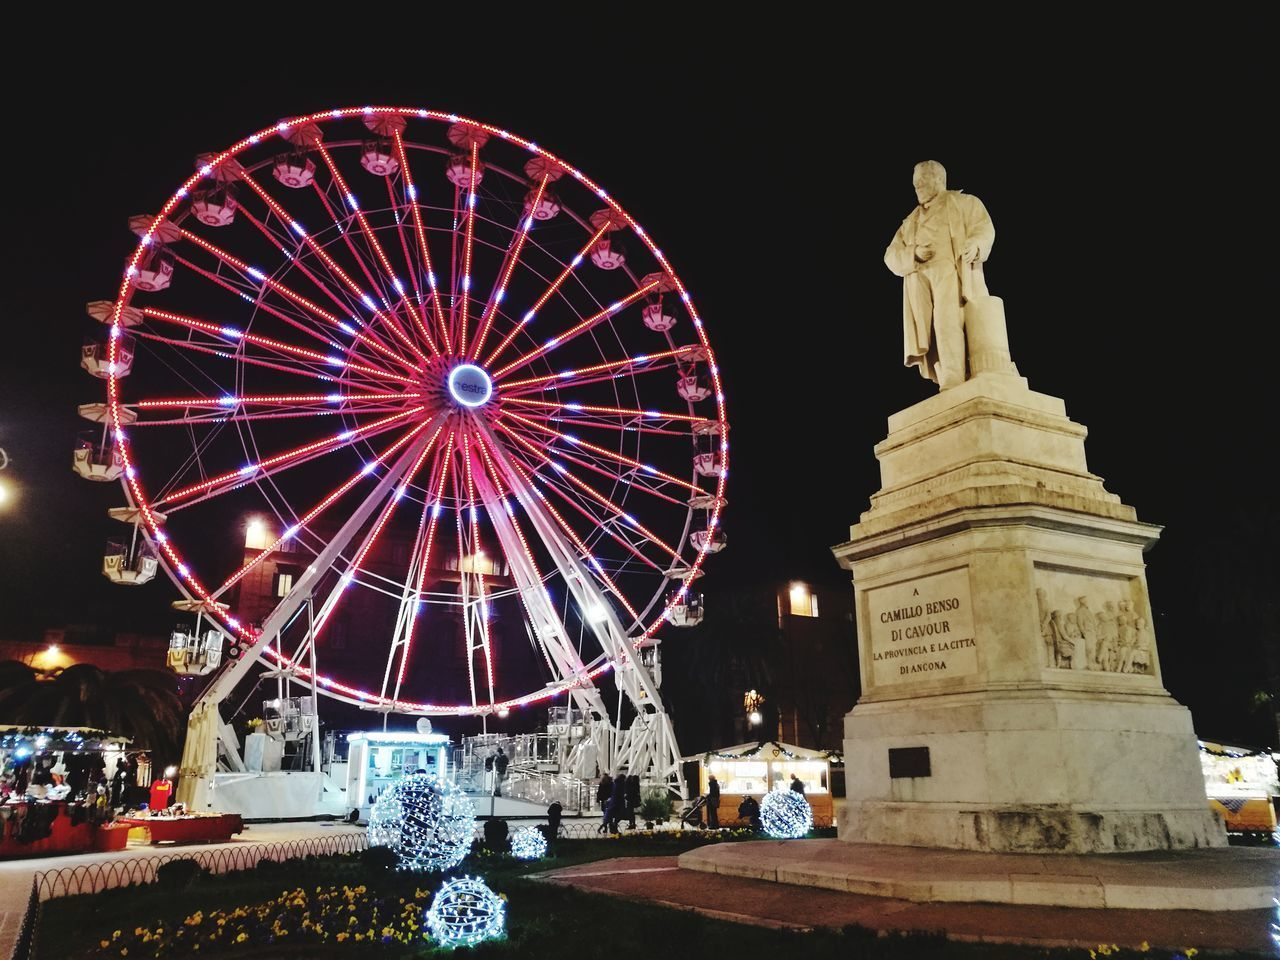 LOW ANGLE VIEW OF ILLUMINATED FERRIS WHEEL IN CITY AT NIGHT